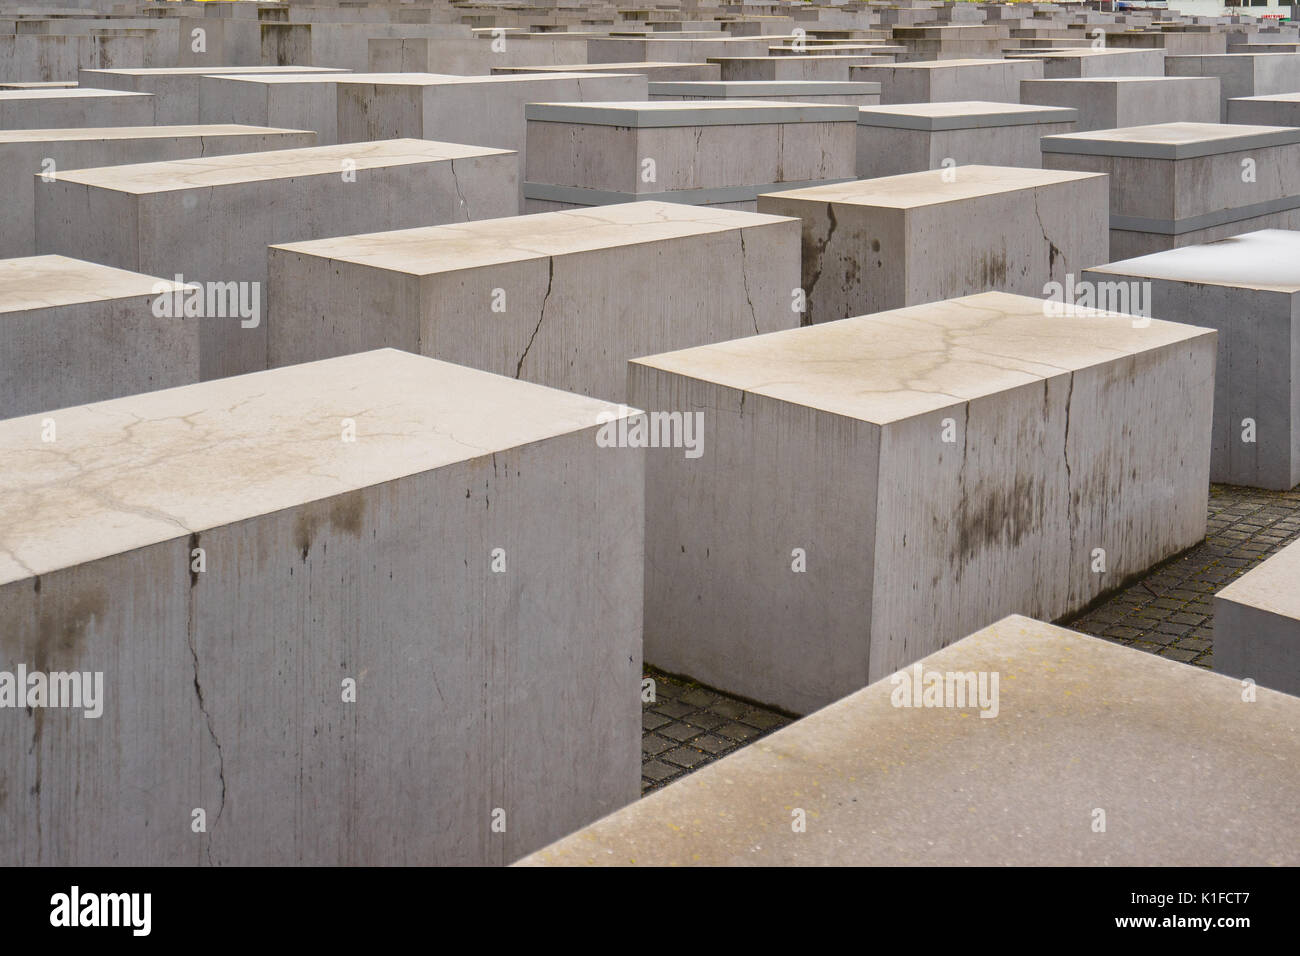 murdered jews of europe Memorial to the murdered jews of europe consists of 2711 rectangular blocks of concrete it took 17 years for the memorial to be completed in berlin its foundation stone was a bundestag resolution passed on june 25, 1999 to erect a memorial to the murdered jews of europe.